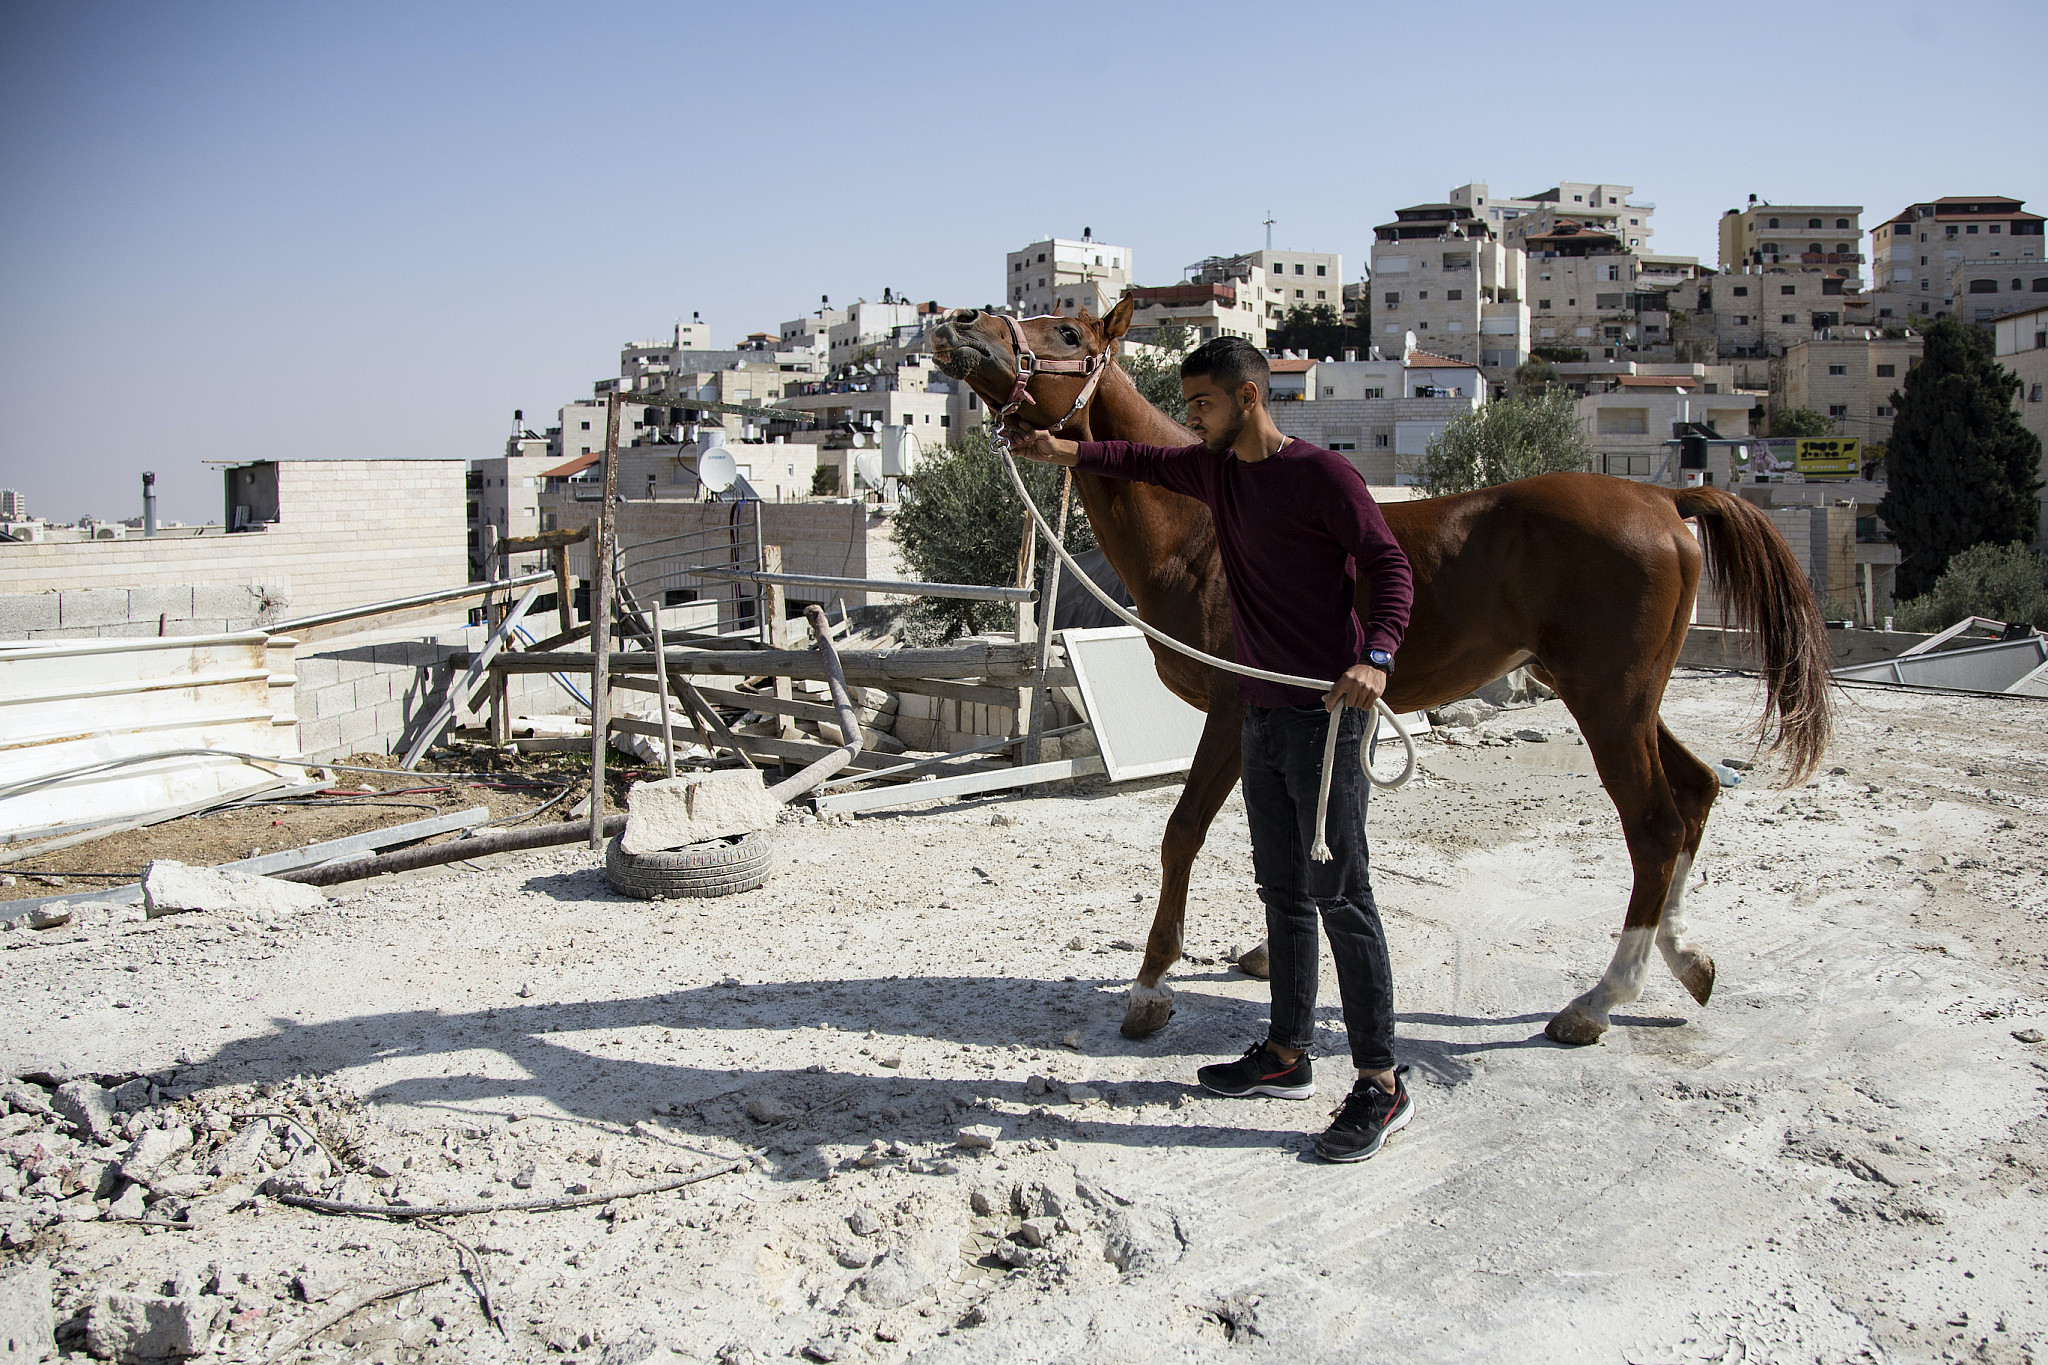 Ishaq Hamdan's son stands with his horse next to a stable demolished by the Israeli authorities, Issawiya, East Jerusalem, November 7, 2019. (Faiz Abu Rmeleh/Activestills.org)